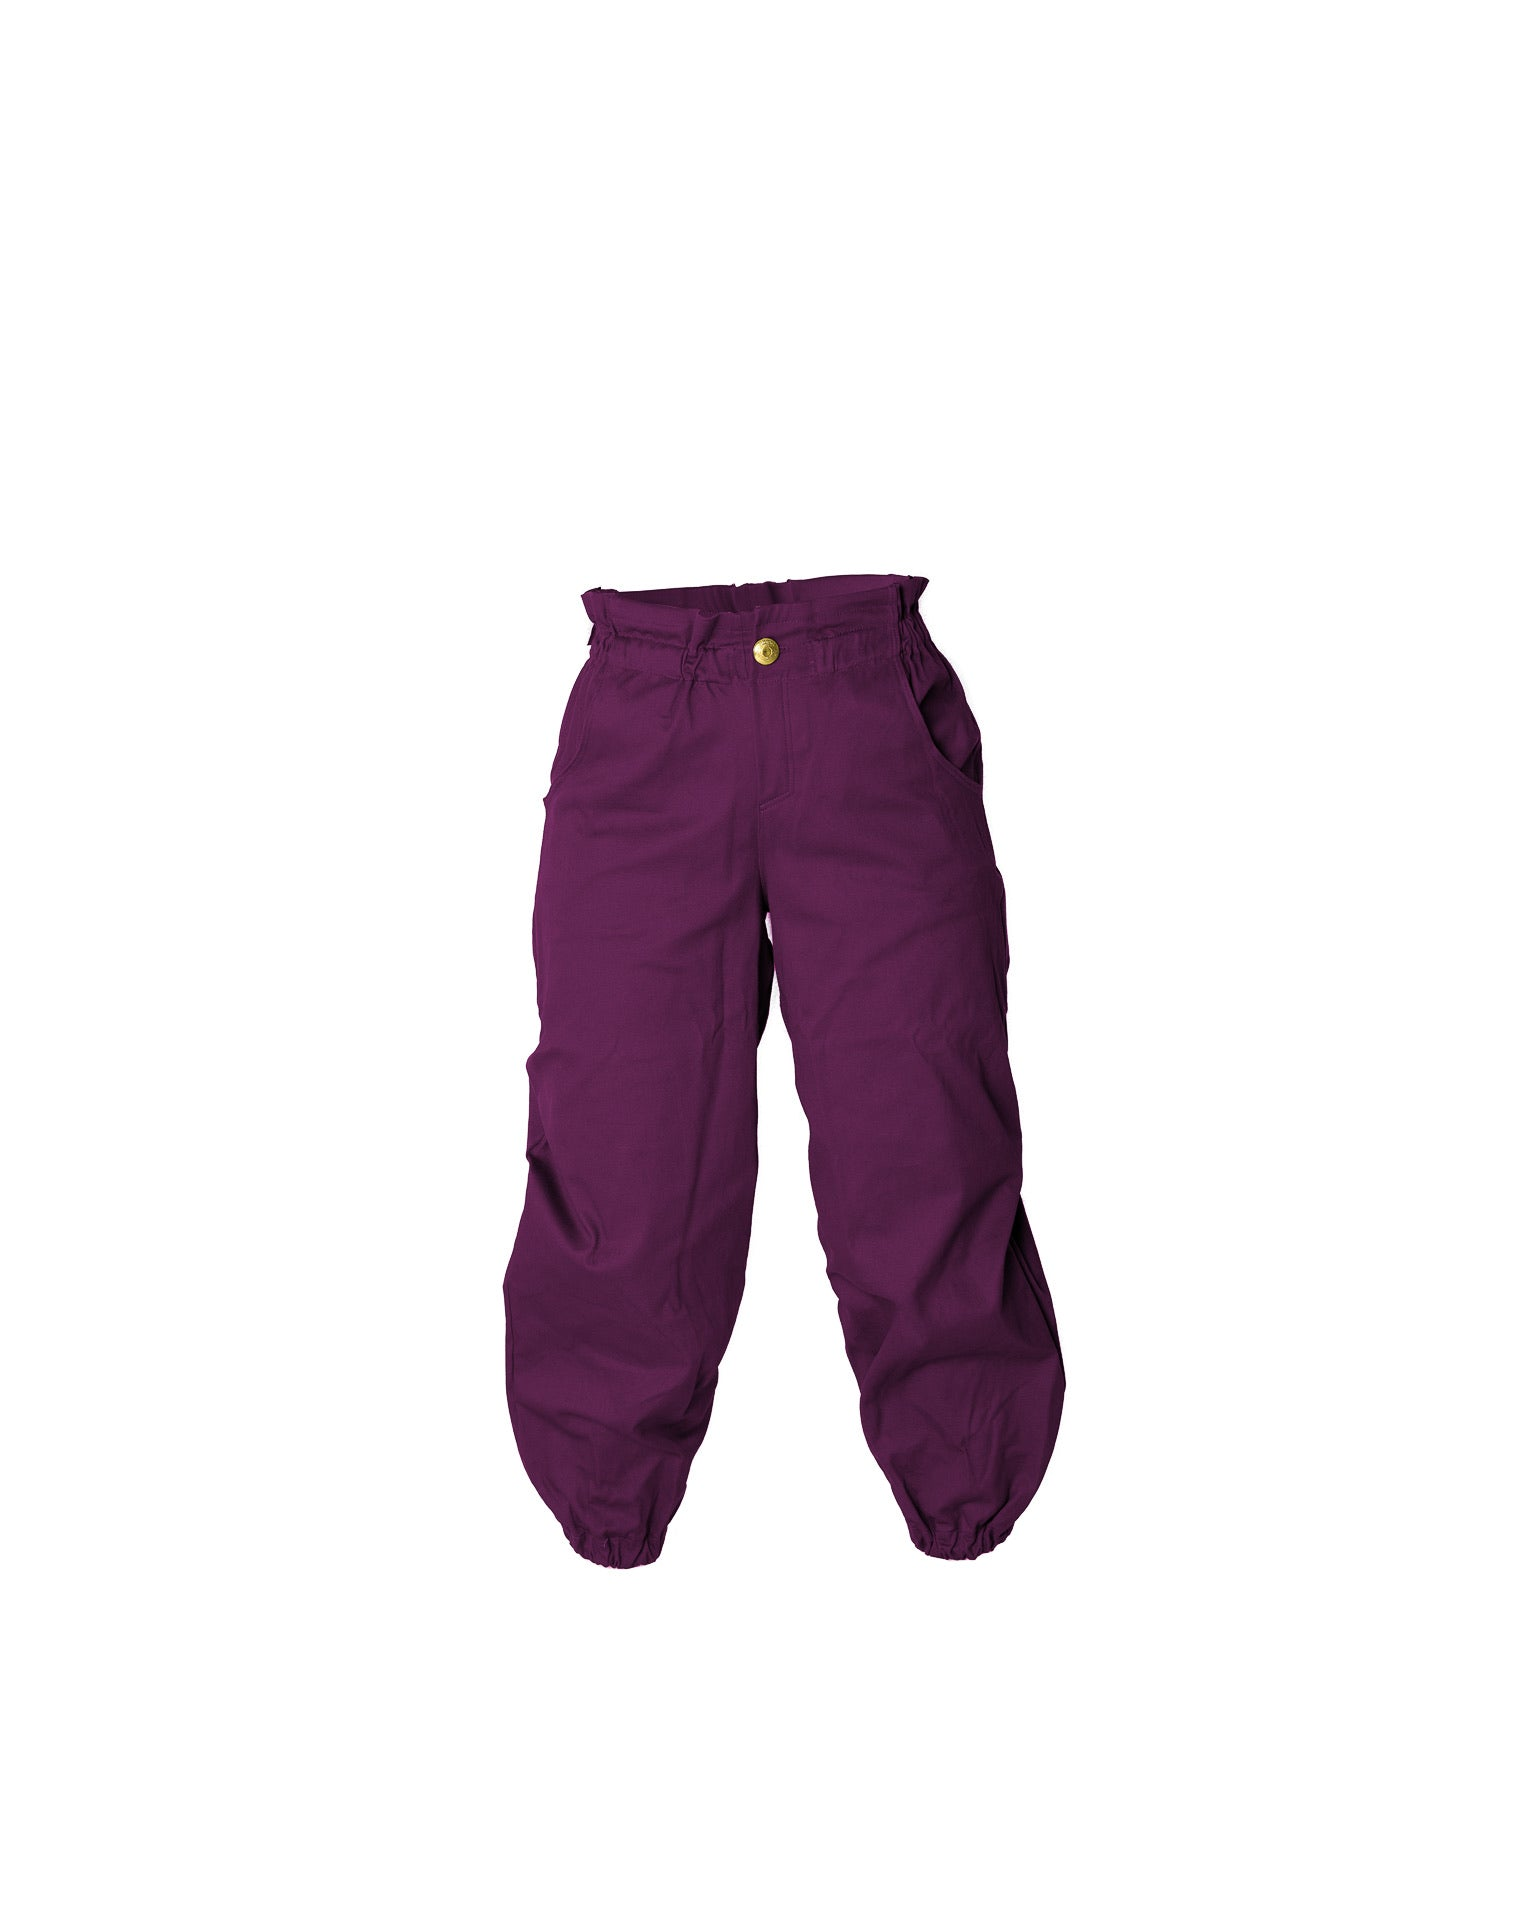 Antigua Fisher Pants Eggplant